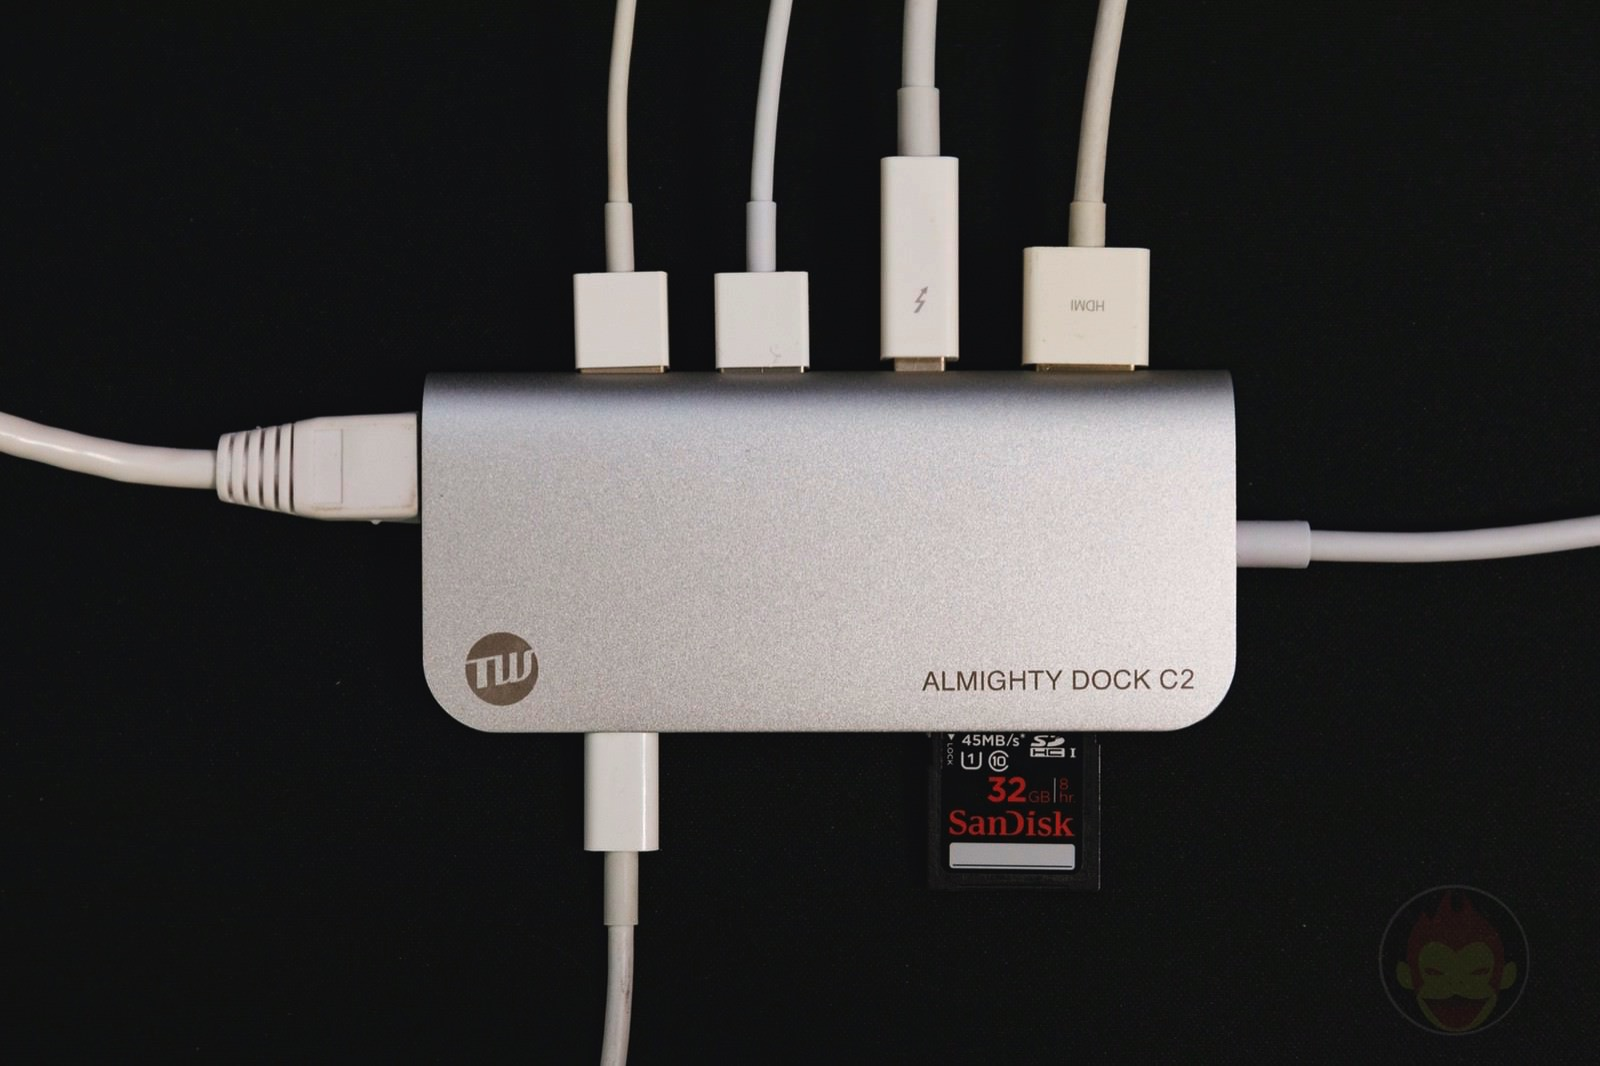 TUNEWEAR-ALMIGHTY-DOCK-C2-Review-06.jpg